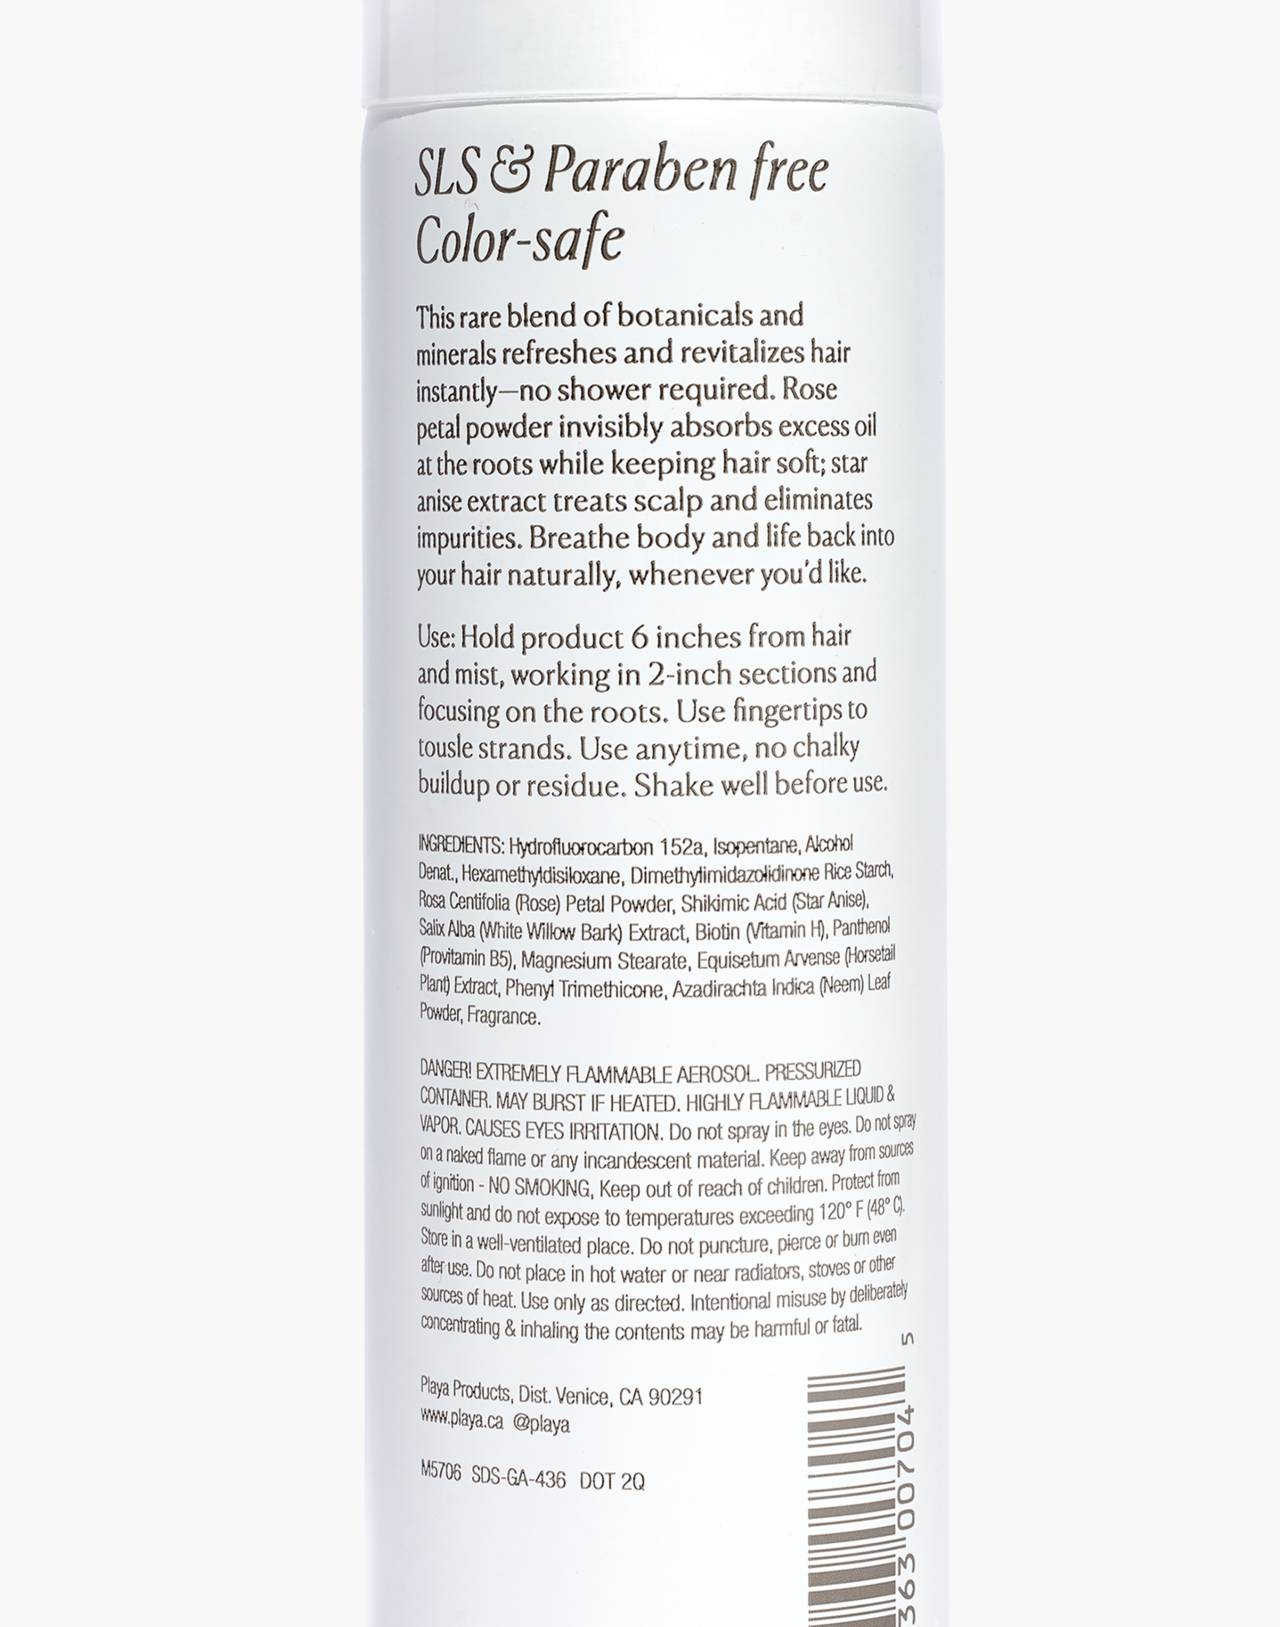 Playa Pure Dry Shampoo in rose petal and star anise image 2